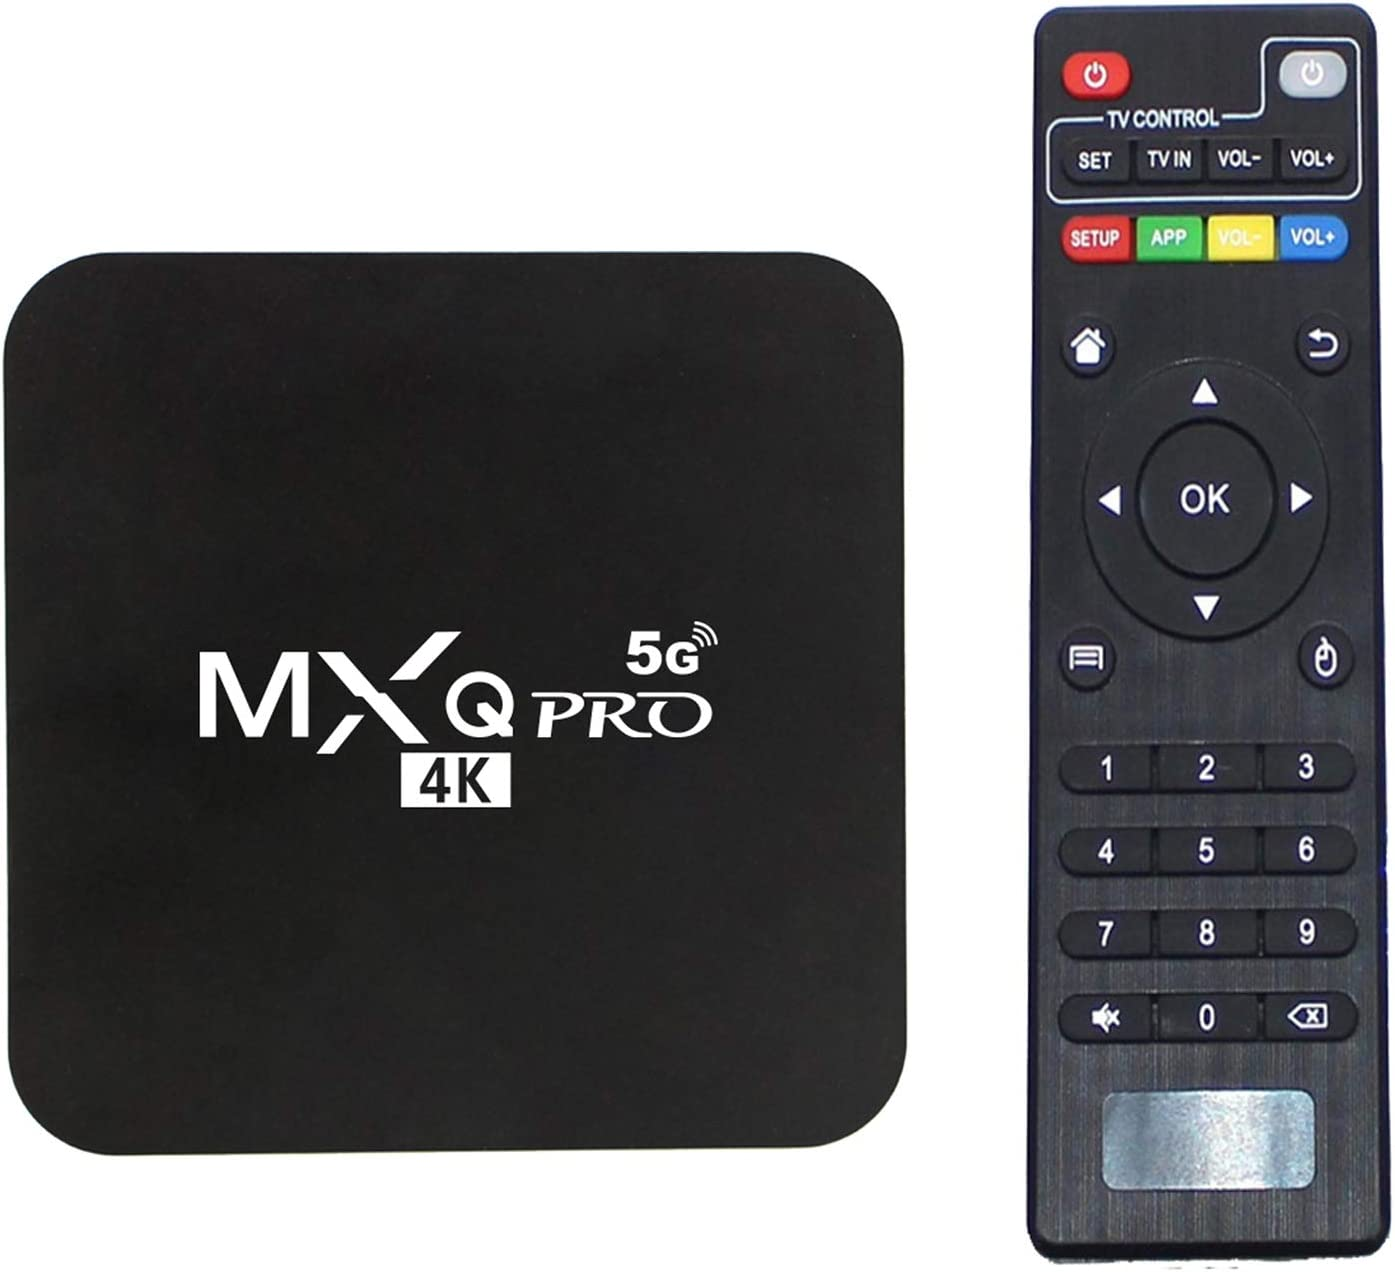 Amazon Com Mxq Pro 5g Android 10 0 Tv Box Cicci Pro 5g 2021 Upgraded Version Ram 2gb Rom 16gb Android Smart Box H 265 Hd 3d Dual Band 2 4g 5 8g Wifi Quad Core Home Media Player